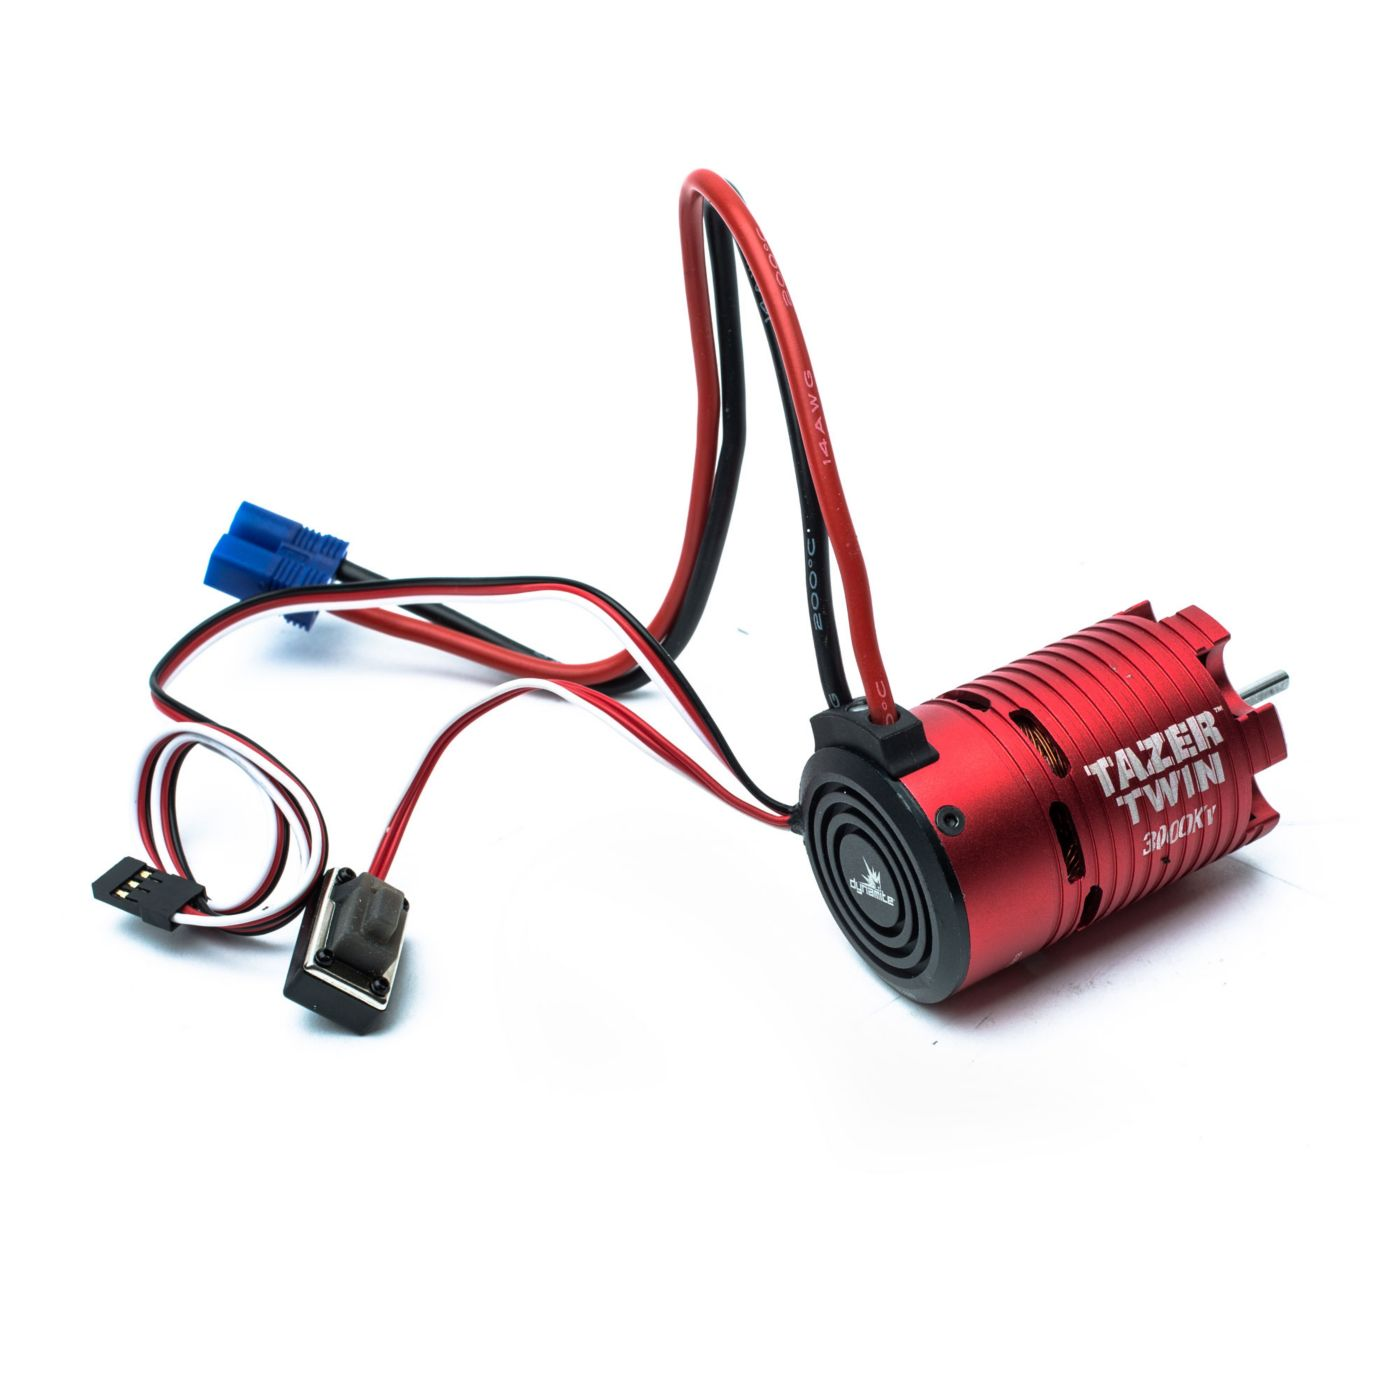 twin engine rc electric wiring wiring library Twin-Engine Trucks image for tazer twin 2 in 1 brushless motor esc combo, 3000kv